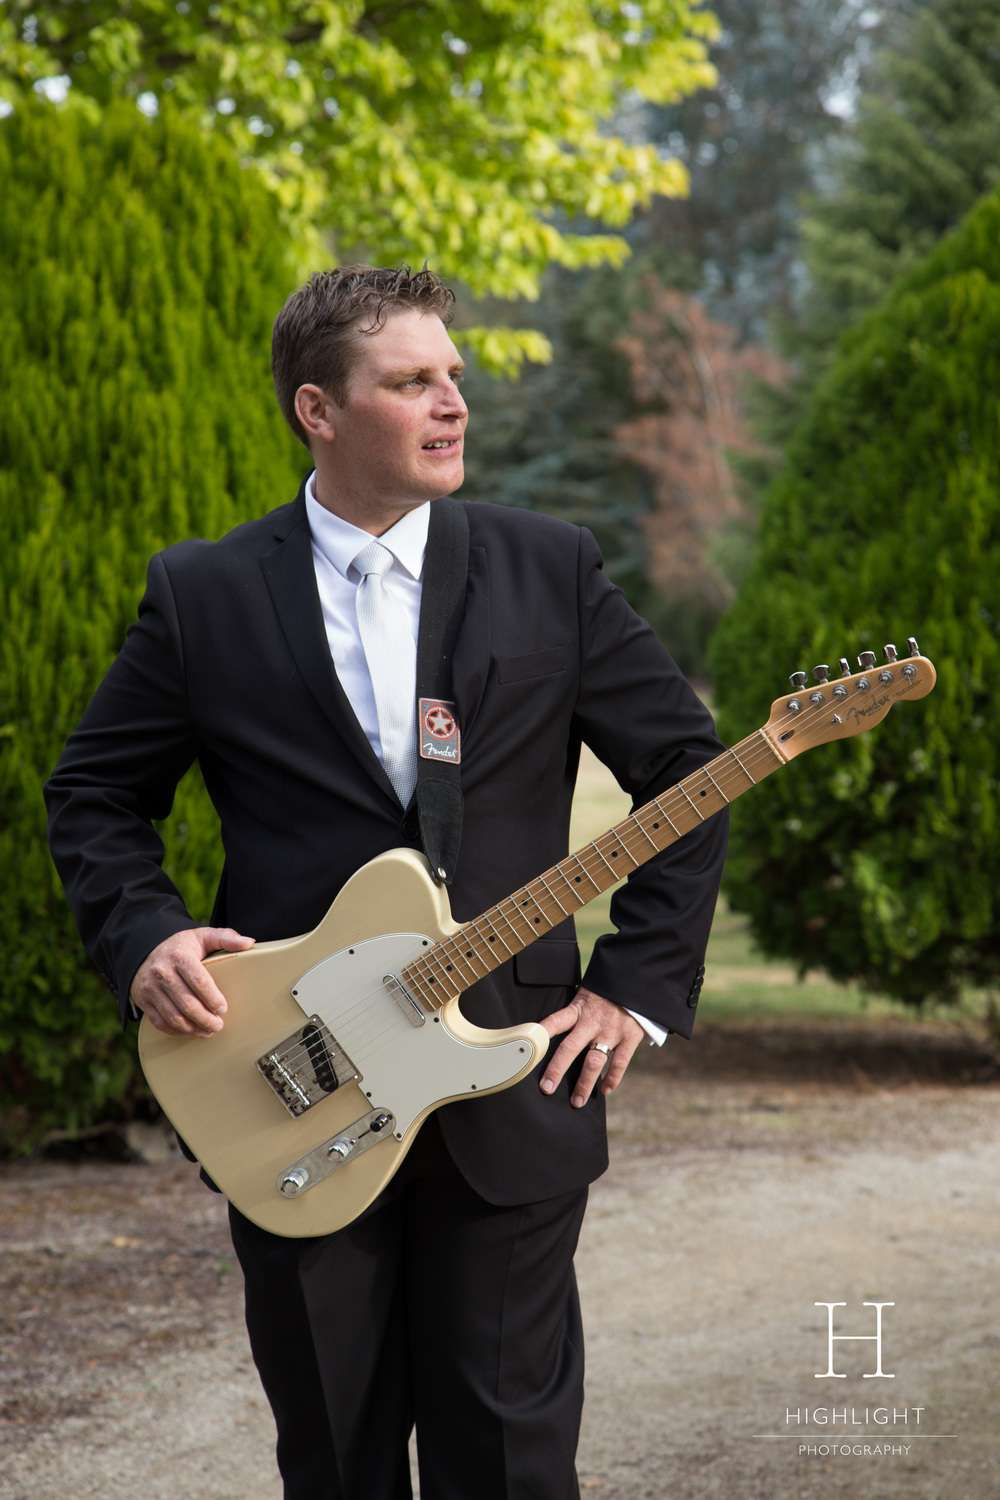 highlight_photography_wedding_new_zealand_guitar.jpg